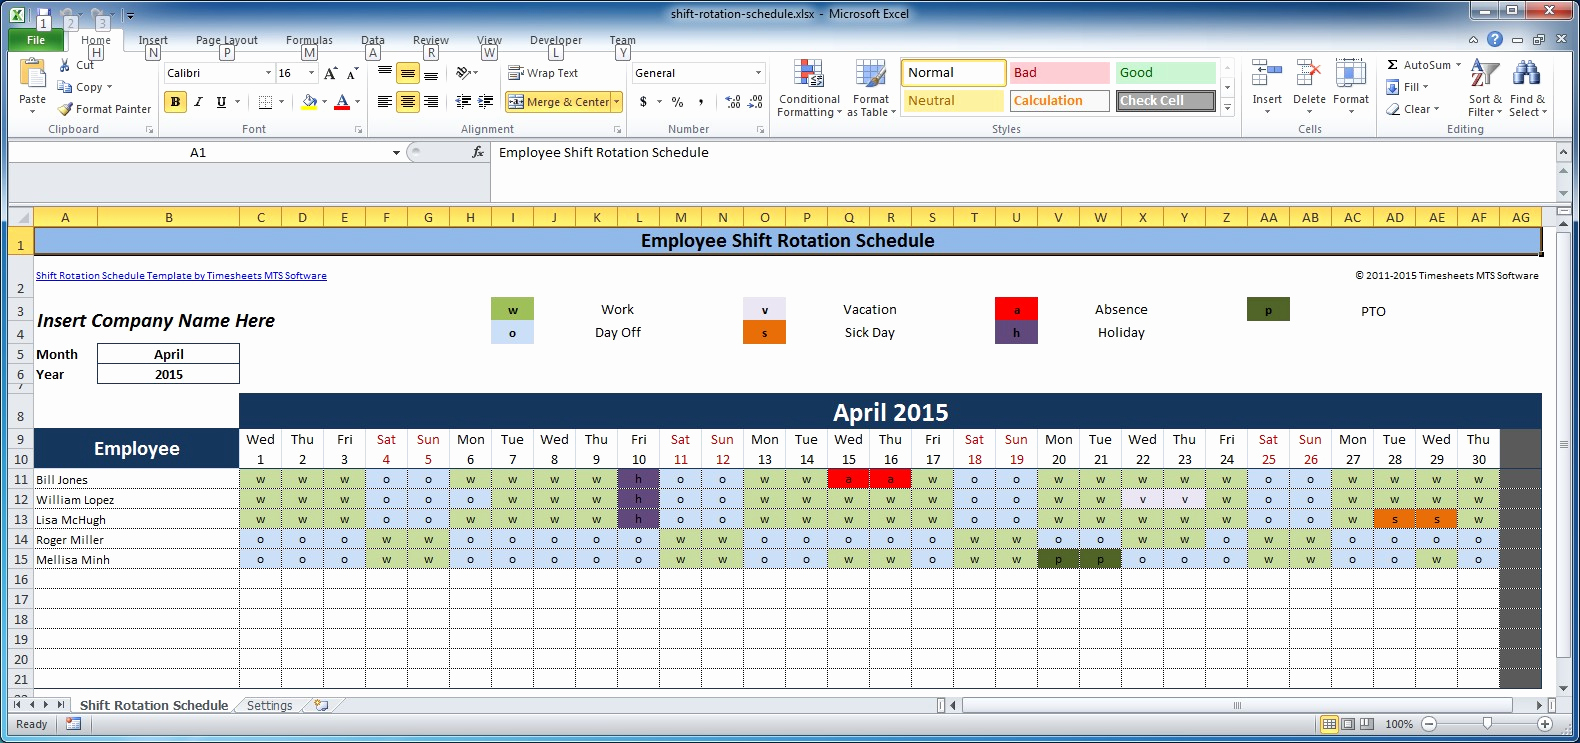 Excel Shift Schedule Template Beautiful Free Employee and Shift Schedule Templates